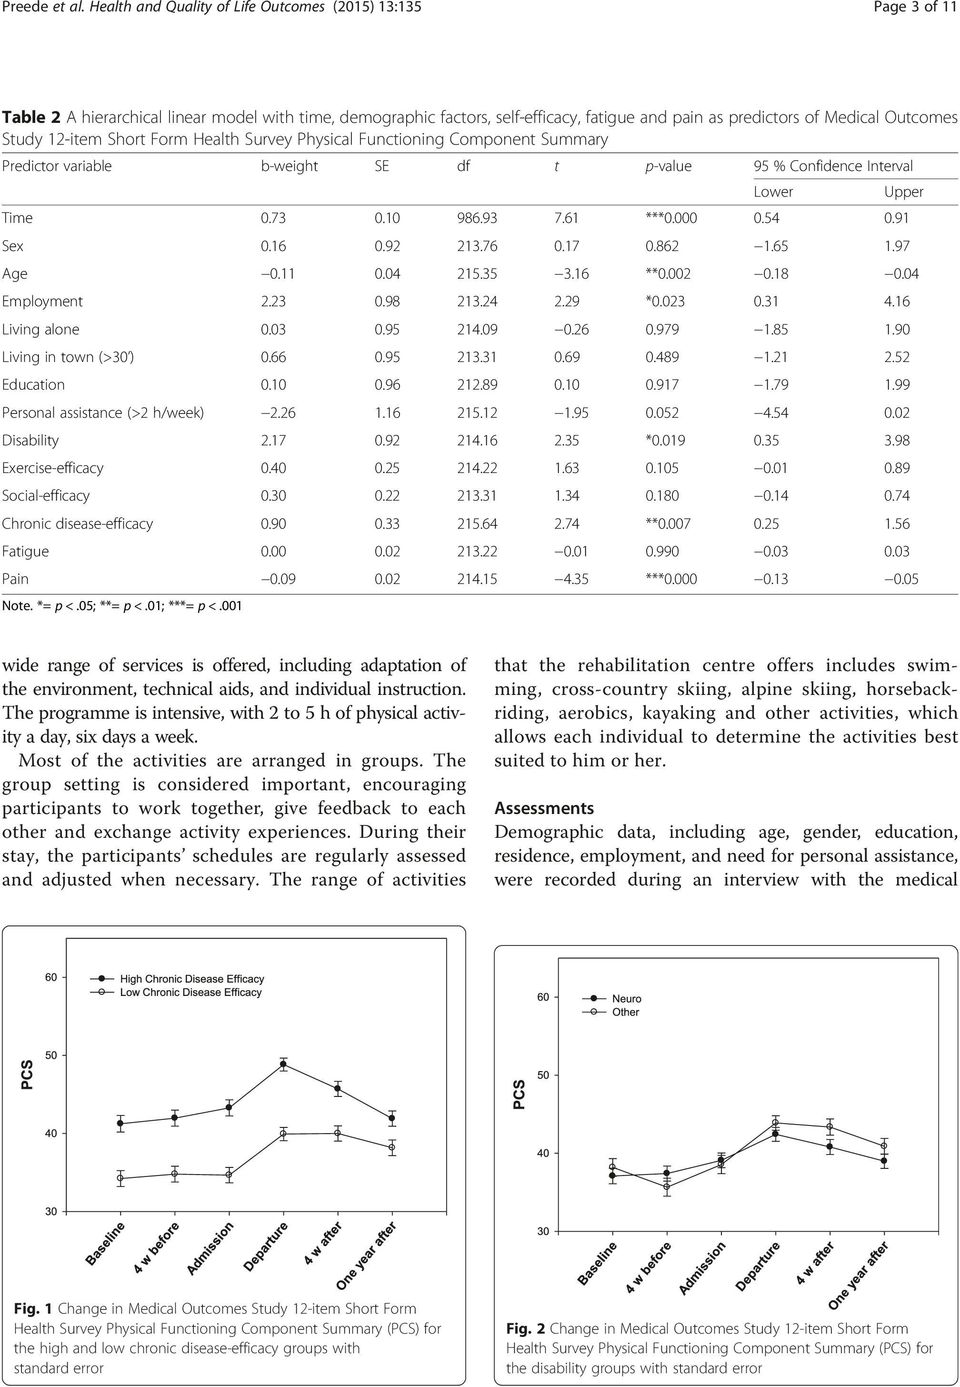 Study 12-item Short Form Health Survey Physical Functioning Component Summary Predictor variable b-weight SE df t p-value 95 % Confidence Interval Time 0.73 0.10 986.93 7.61 ***0.000 0.54 0.91 Sex 0.